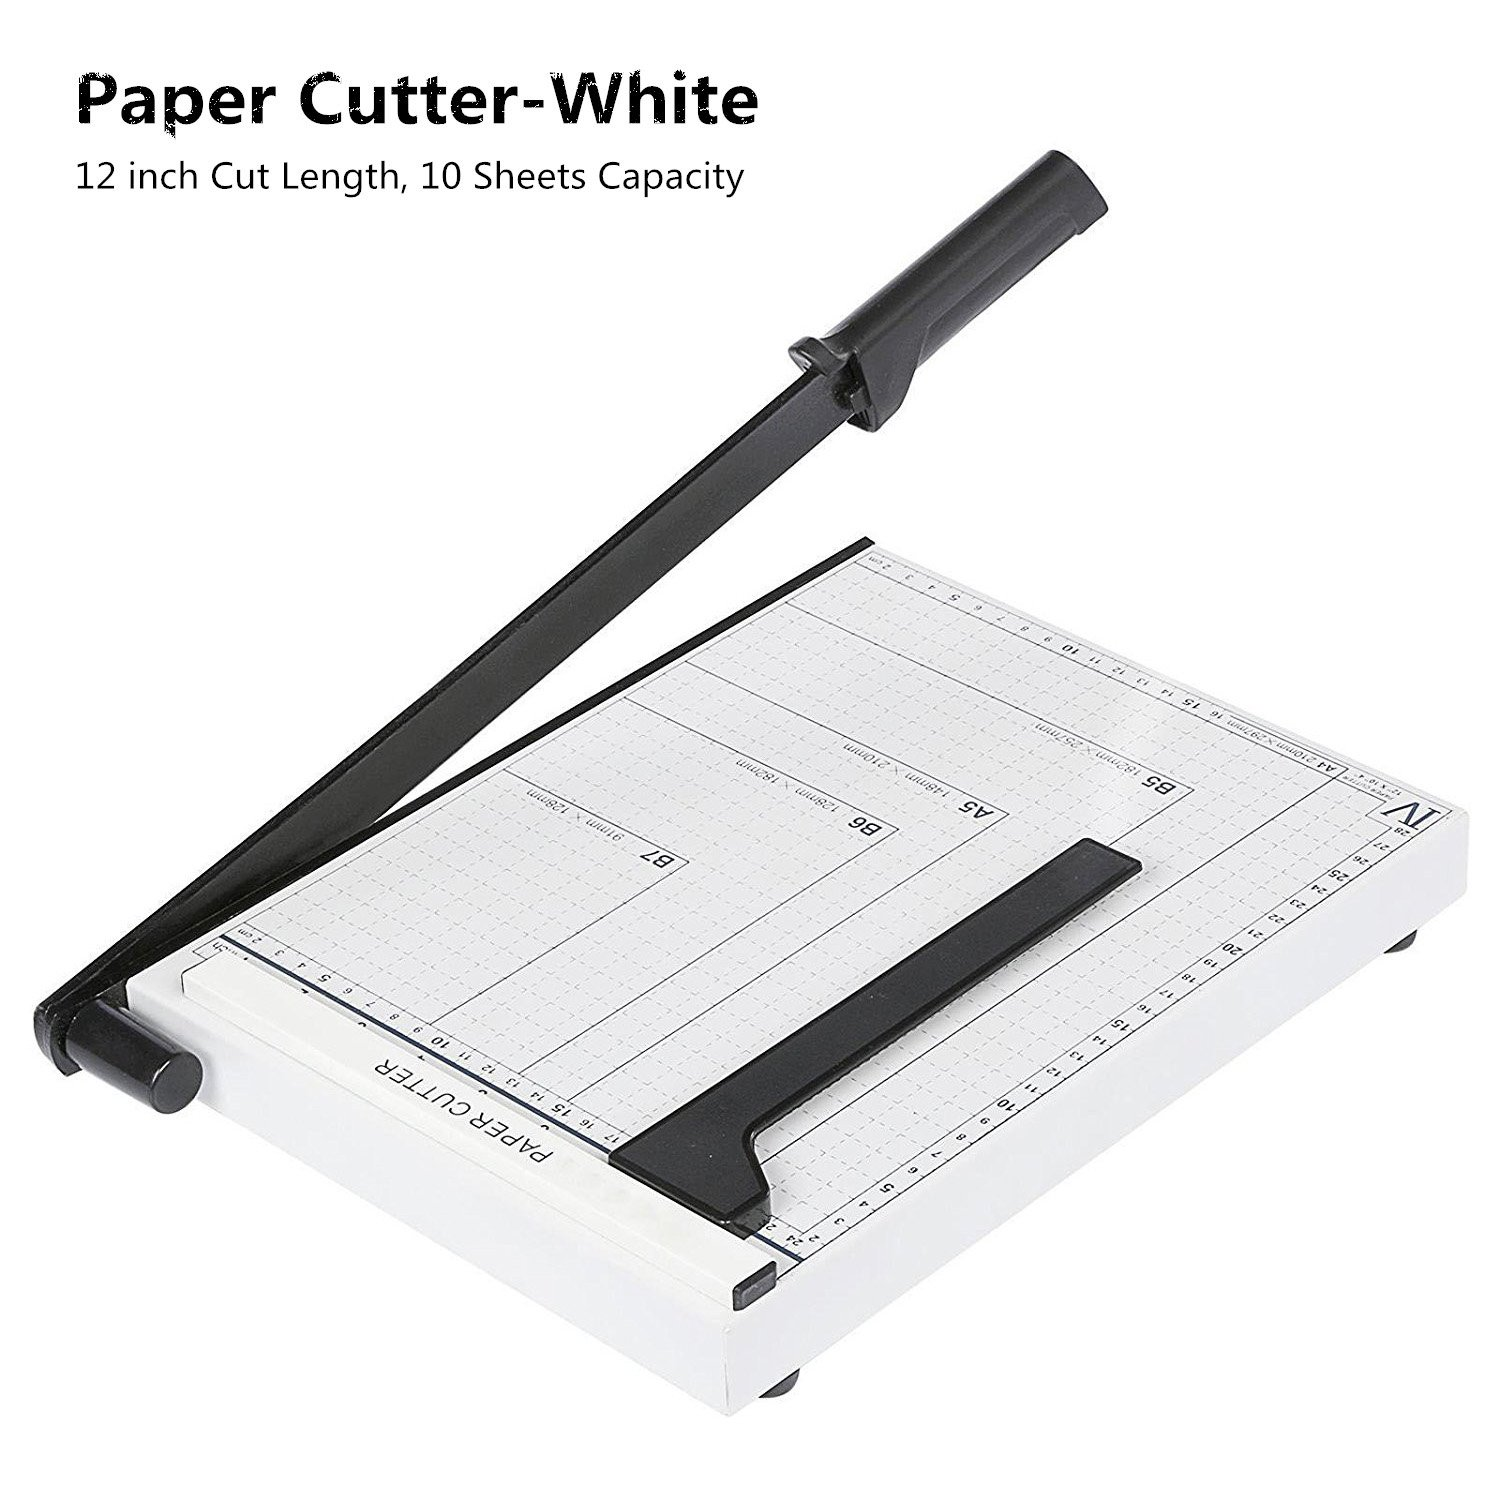 Black Guillotine Paper Cutter Machine, Heavy Duty Guillotine Cutting Blade Gridded Metal Base Photo Paper Trimmer, 12 inch Cut length, 10-sheet Capacity for Home/Office -US STOCK (A4-Black-300X250cm) Evokem